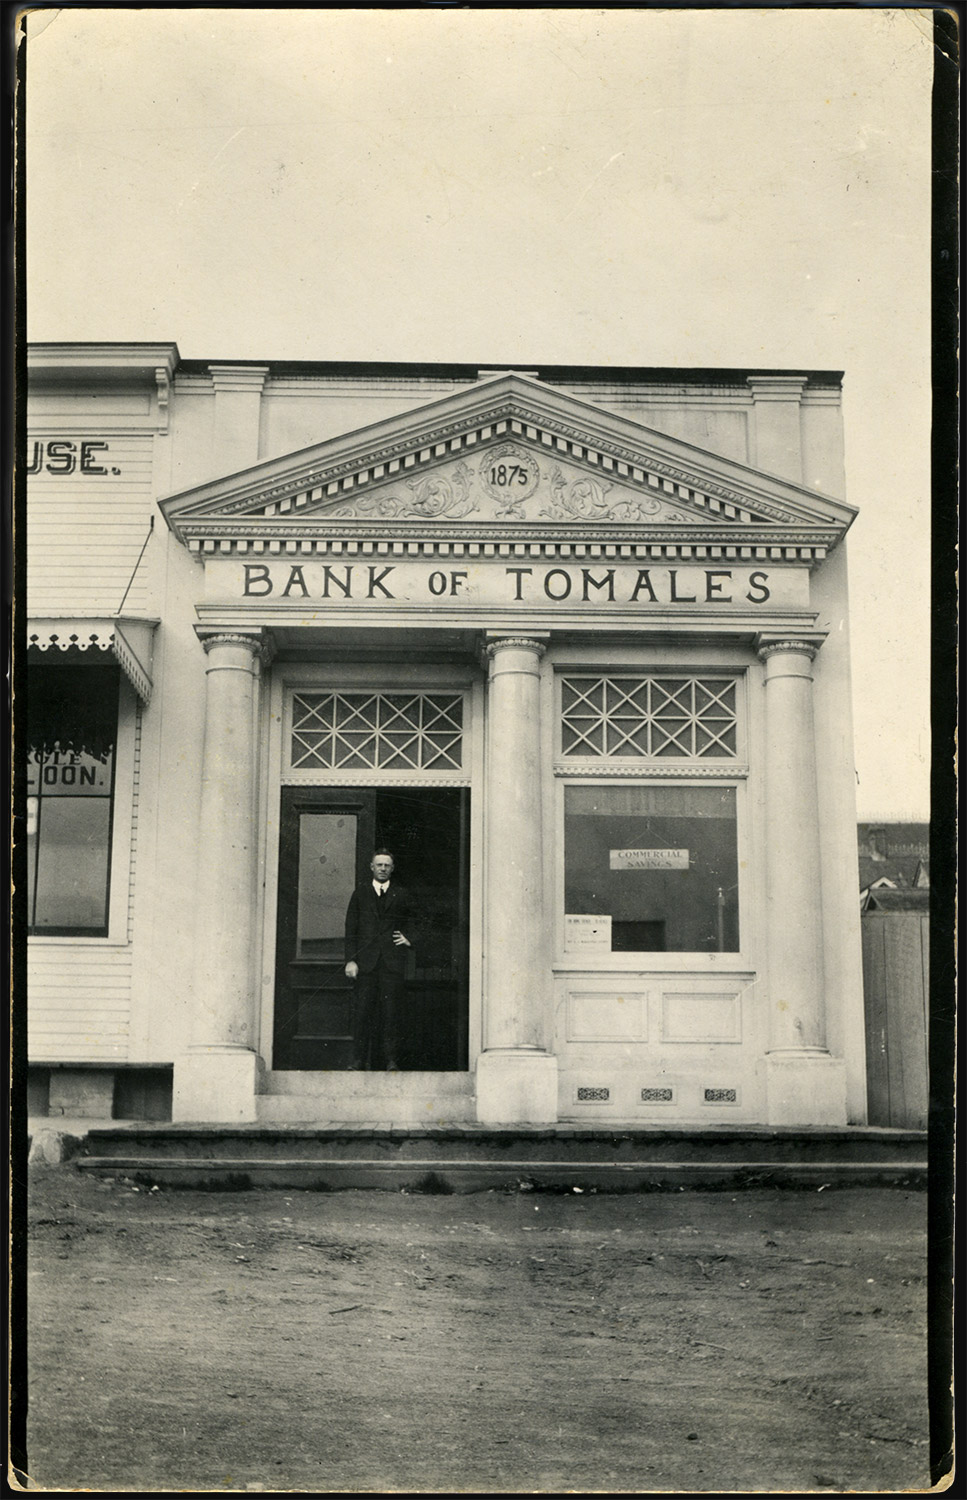 Bank of Tomales